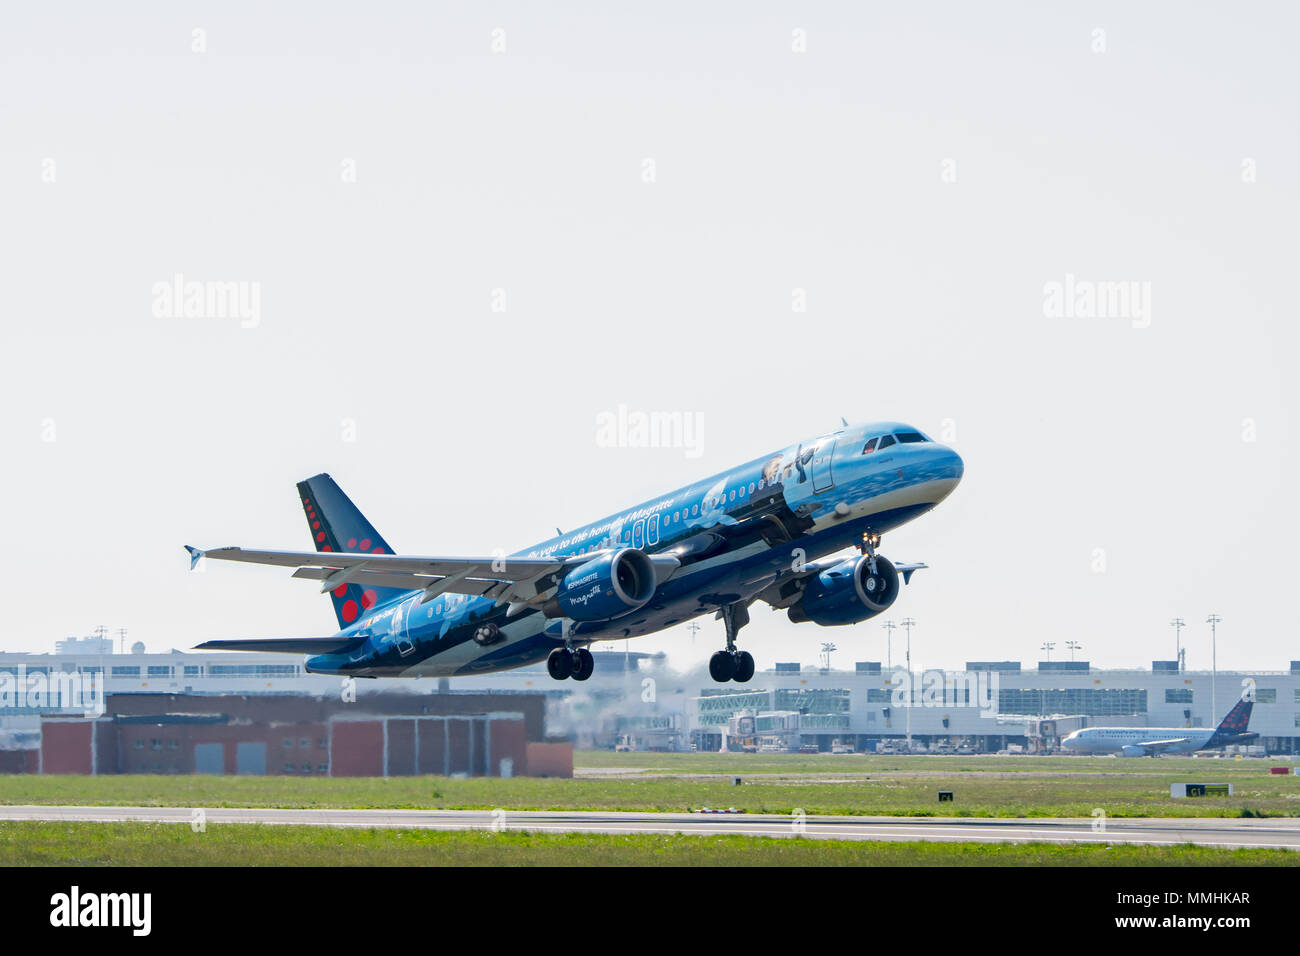 Airbus A320-214 in Magritte livery, commercial passenger twin-engine jet airliner from Belgian Brussels Airlines taking off from Brussels Airport - Stock Image